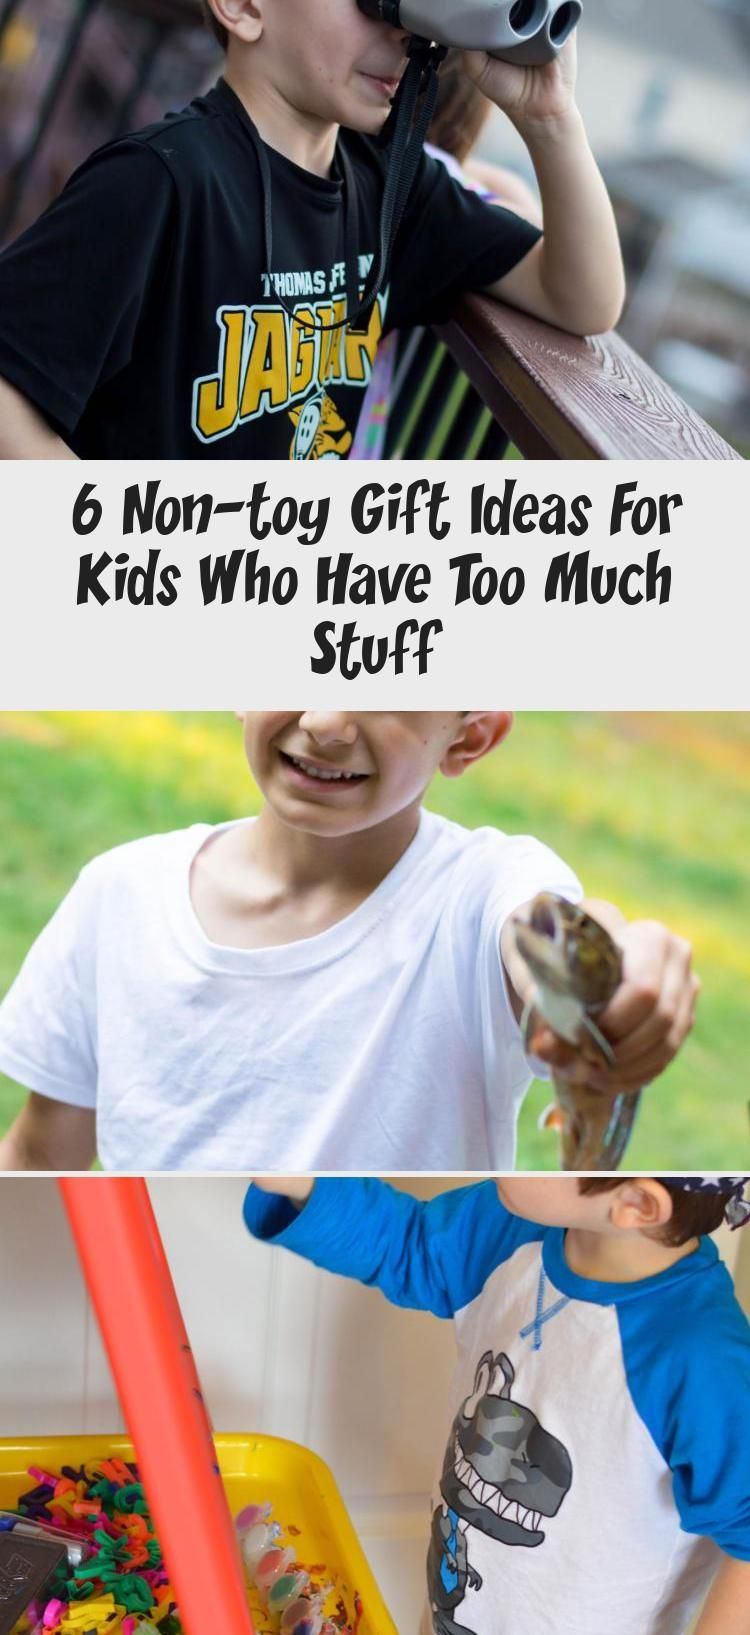 Are you sick of stepping on legos? Do your kids have boxes of toys they never play with? Check out these 6 easy non-toy gift ideas that all kids will surely love! #nontoygifts #giftsforkids #giftsforgirls #giftsforboys #giftideas #Cutetoys #toysIlustration #Papertoys #Rabbittoys #toysForWomen